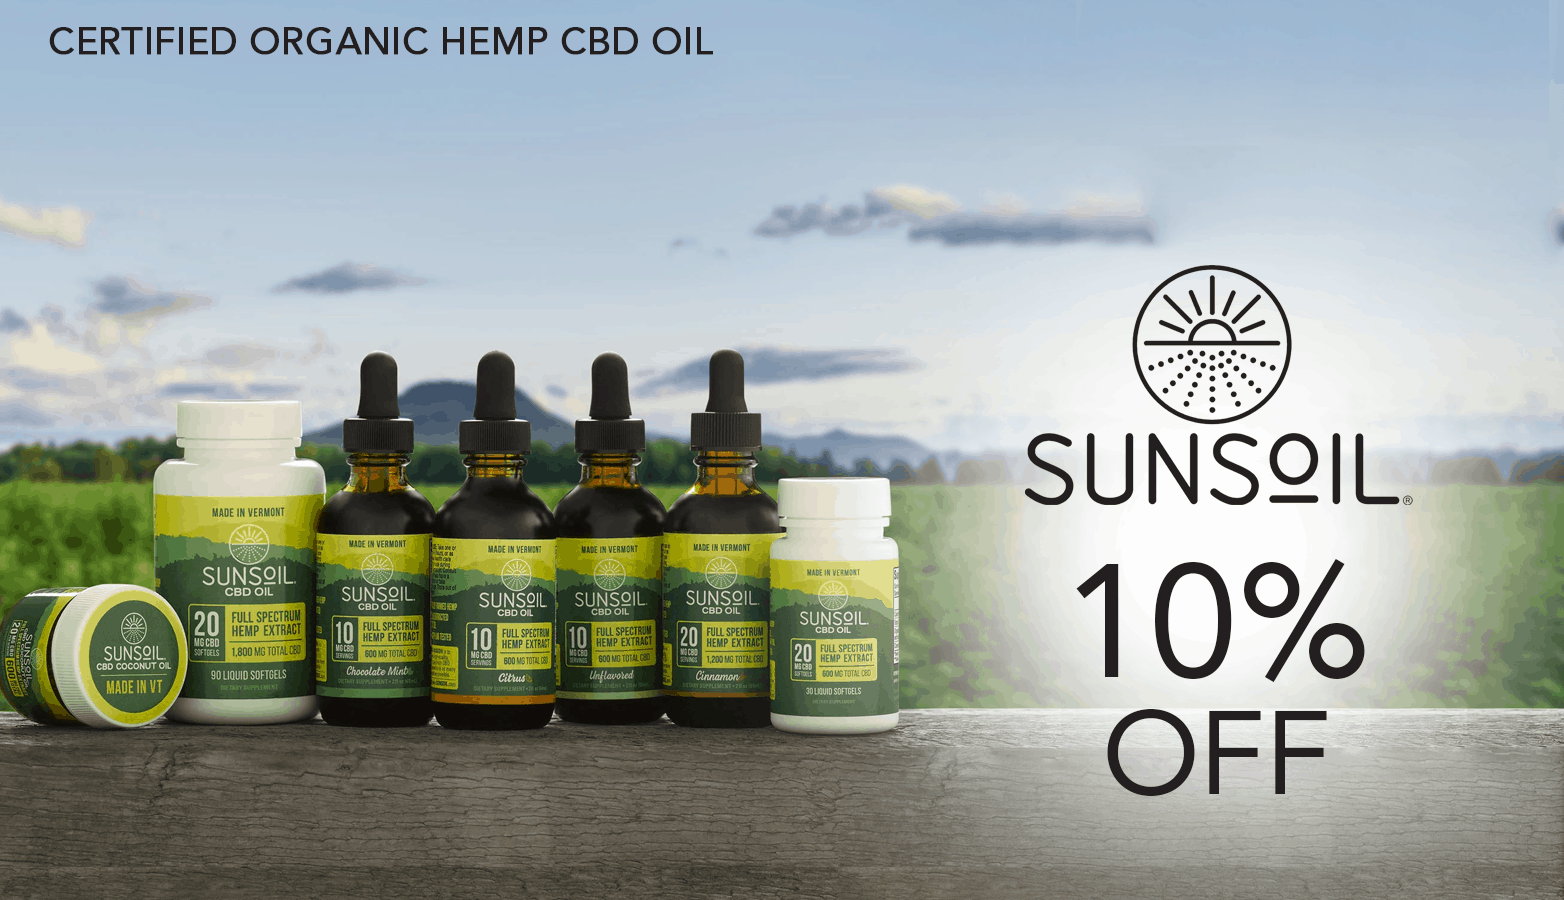 Sunsoil CBD Coupon Code Website